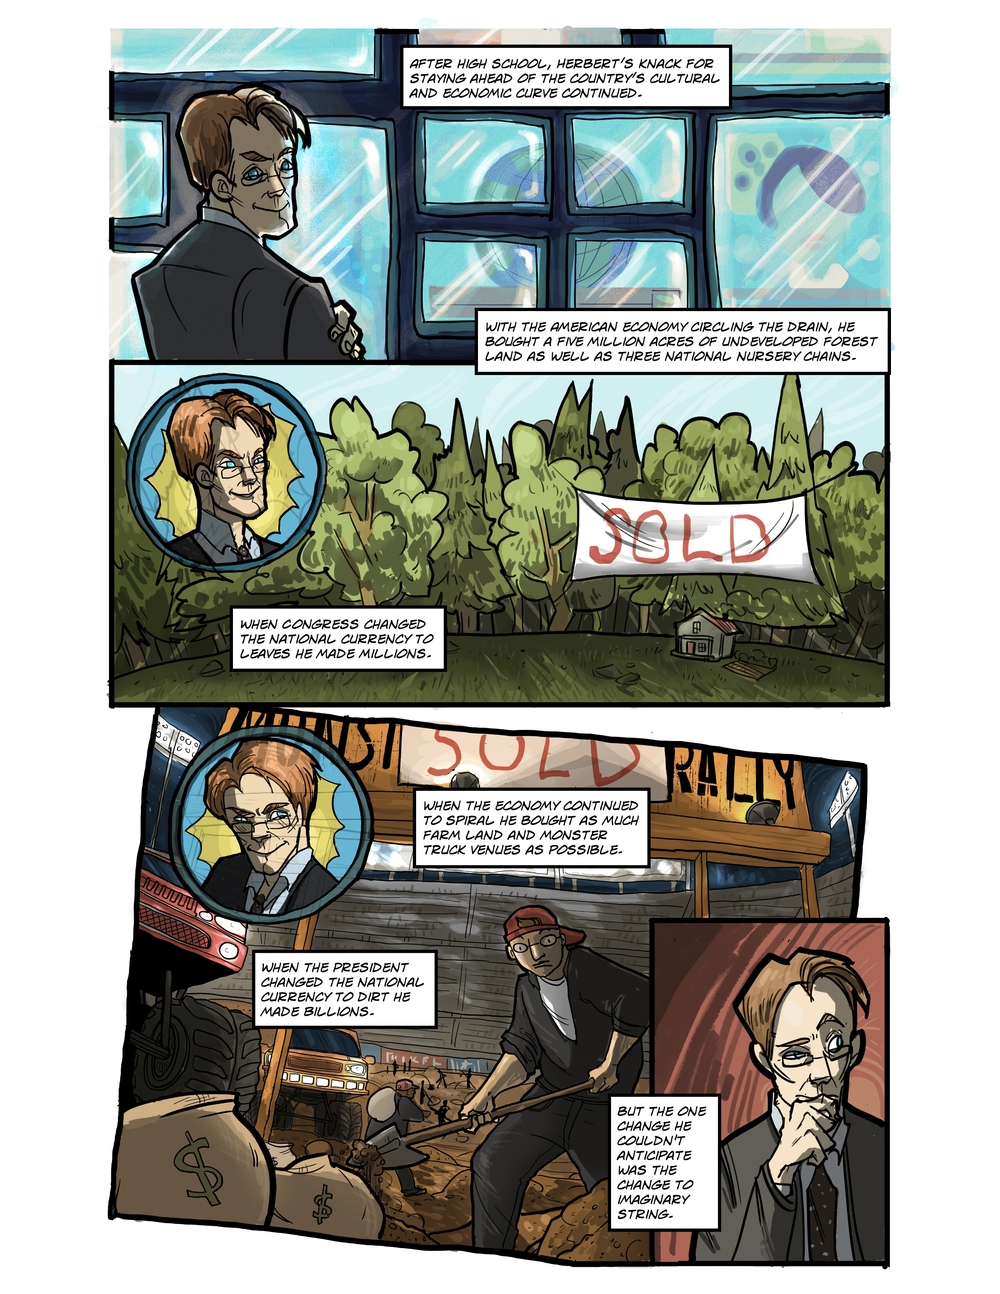 IMAGINARY STRING page 6 - story 20 in The Book of Lies